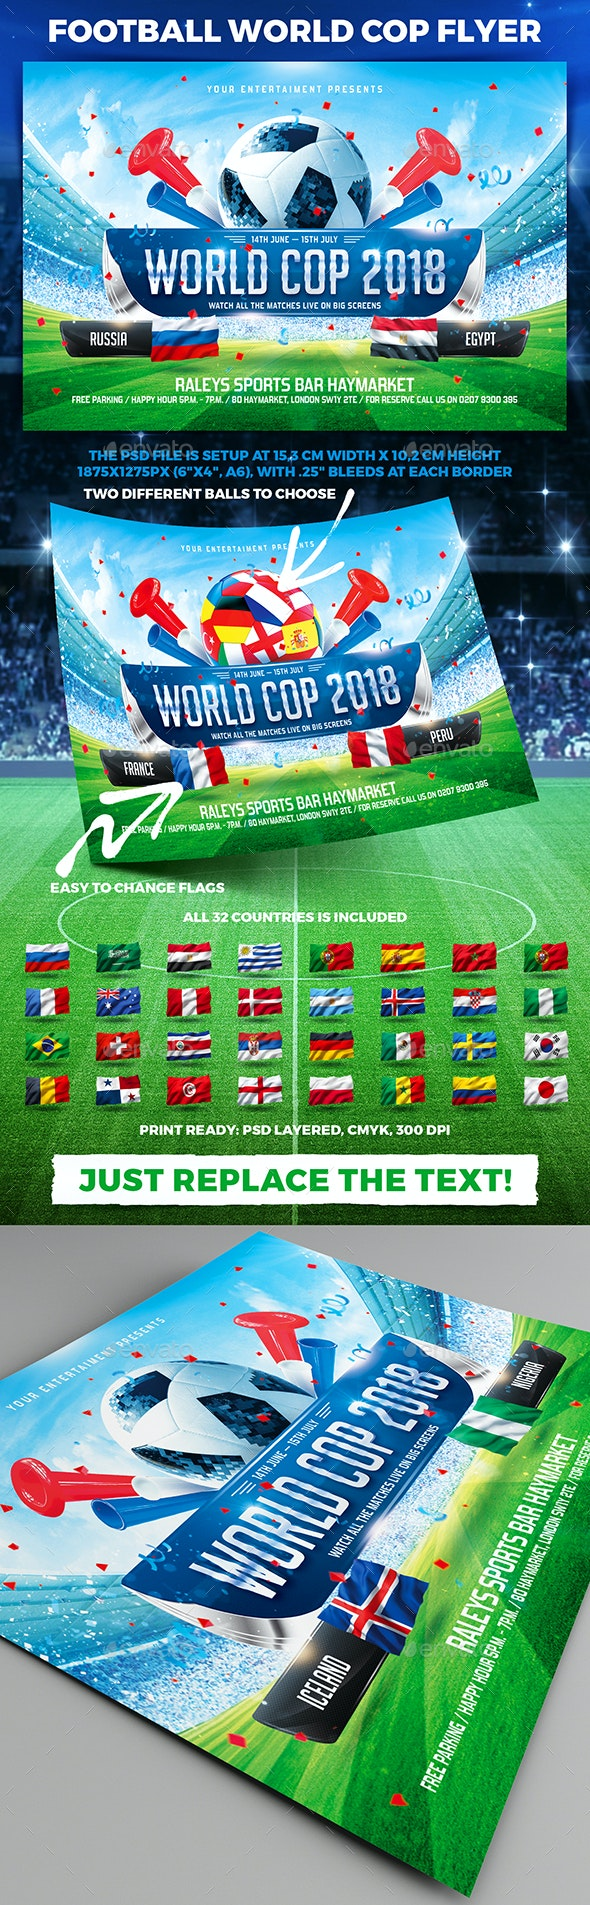 Football World Cop Flyer vol.1 - Sports Events